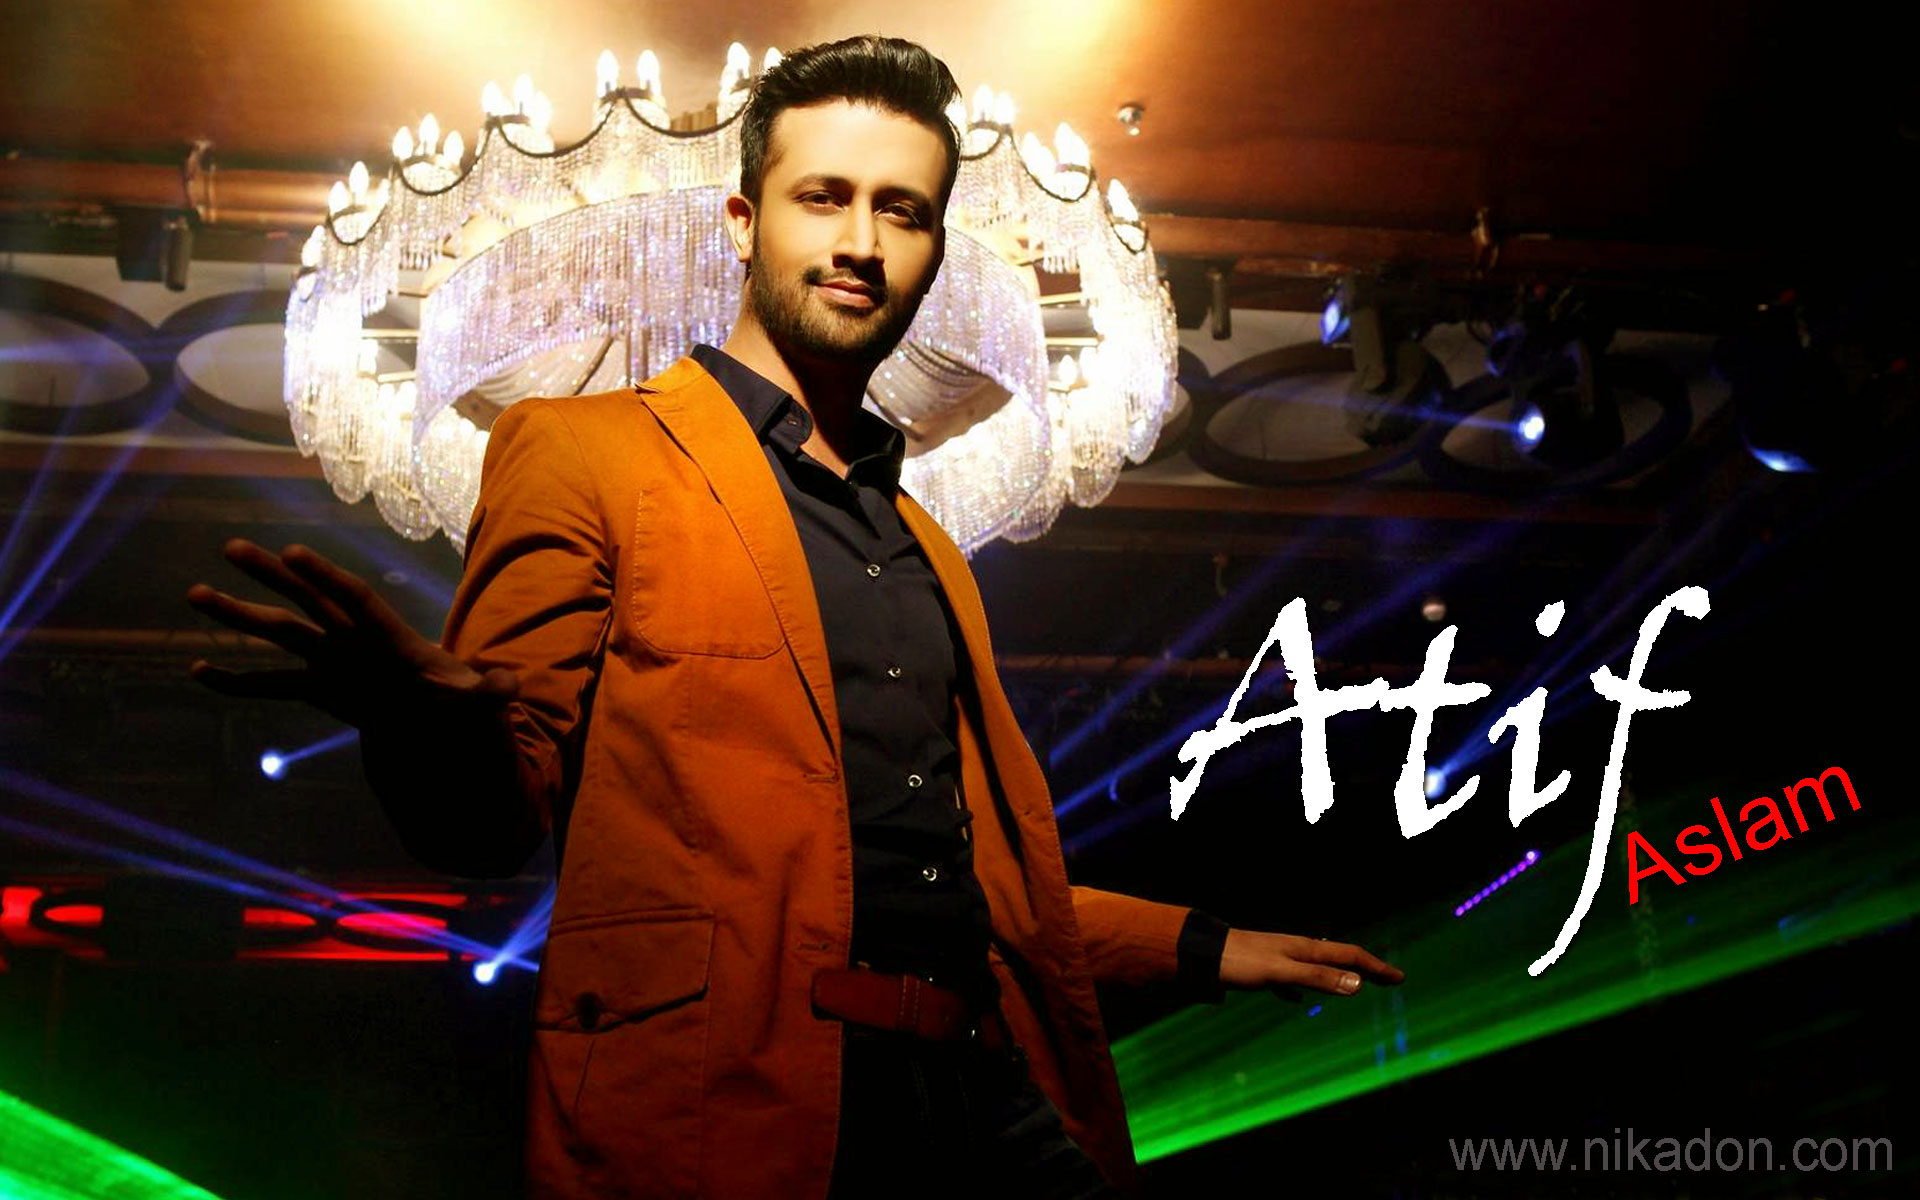 Atif aslam wallpaper download